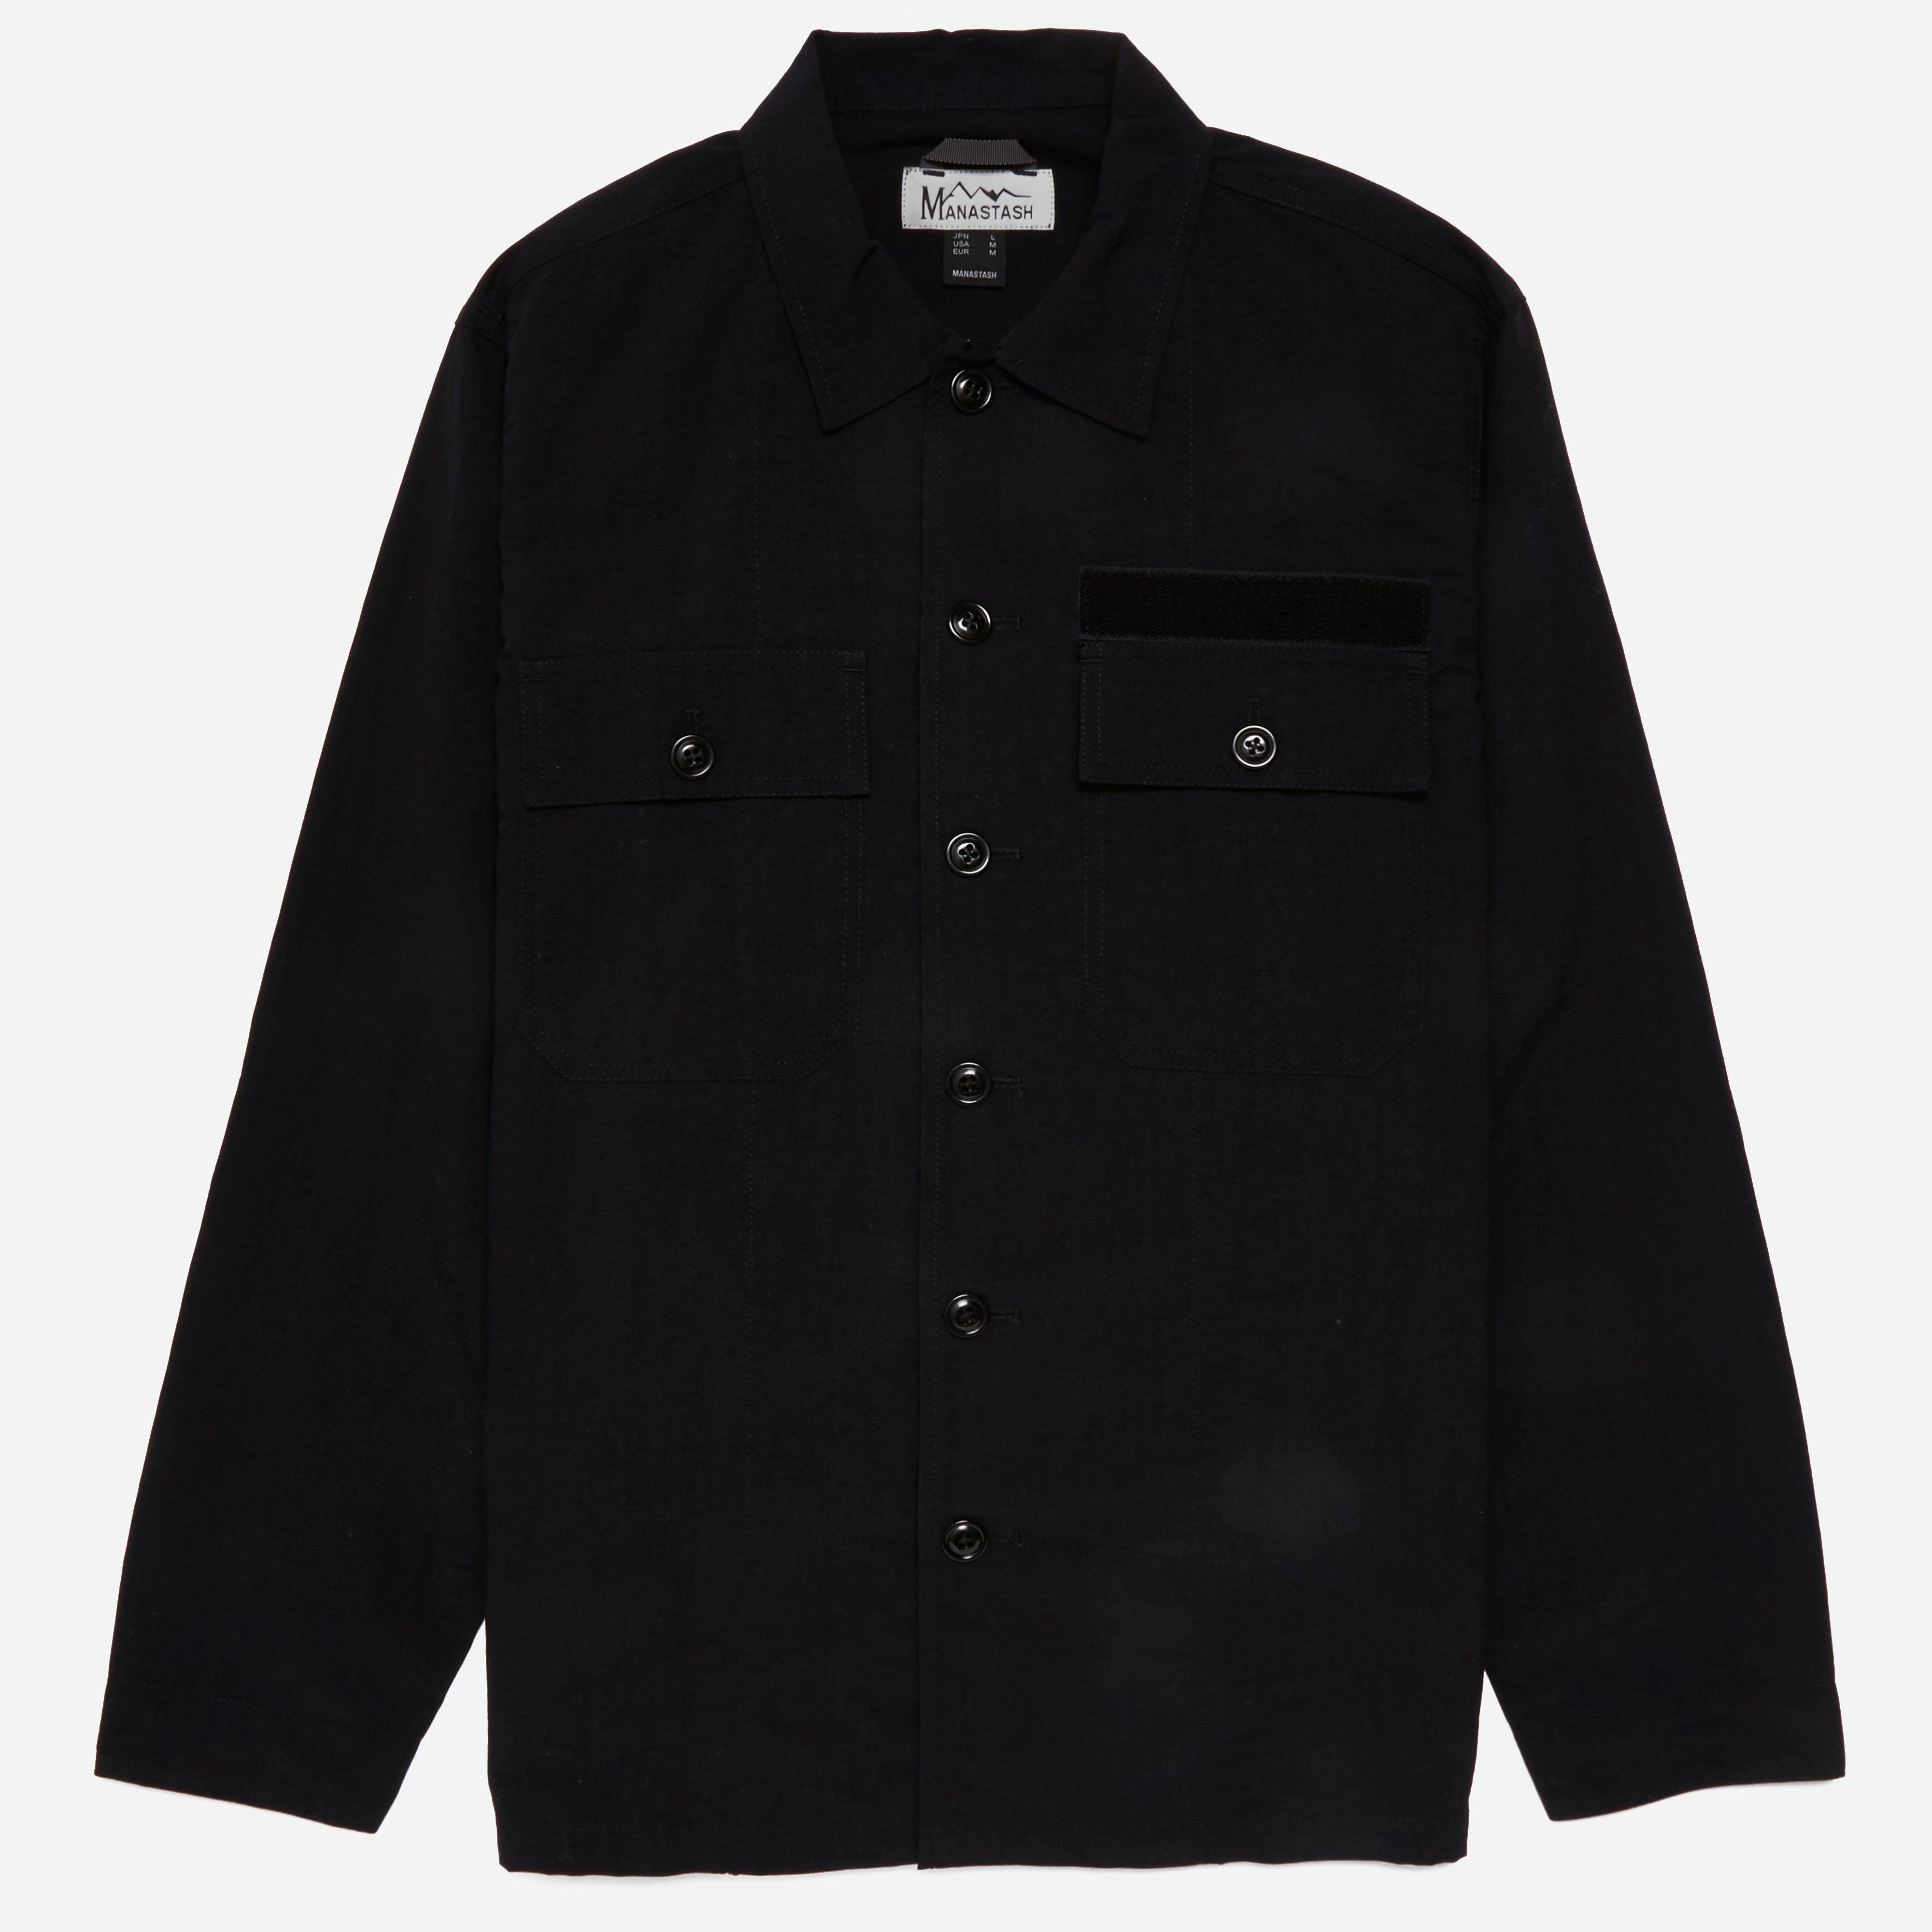 Manastash MT Utility Shirt